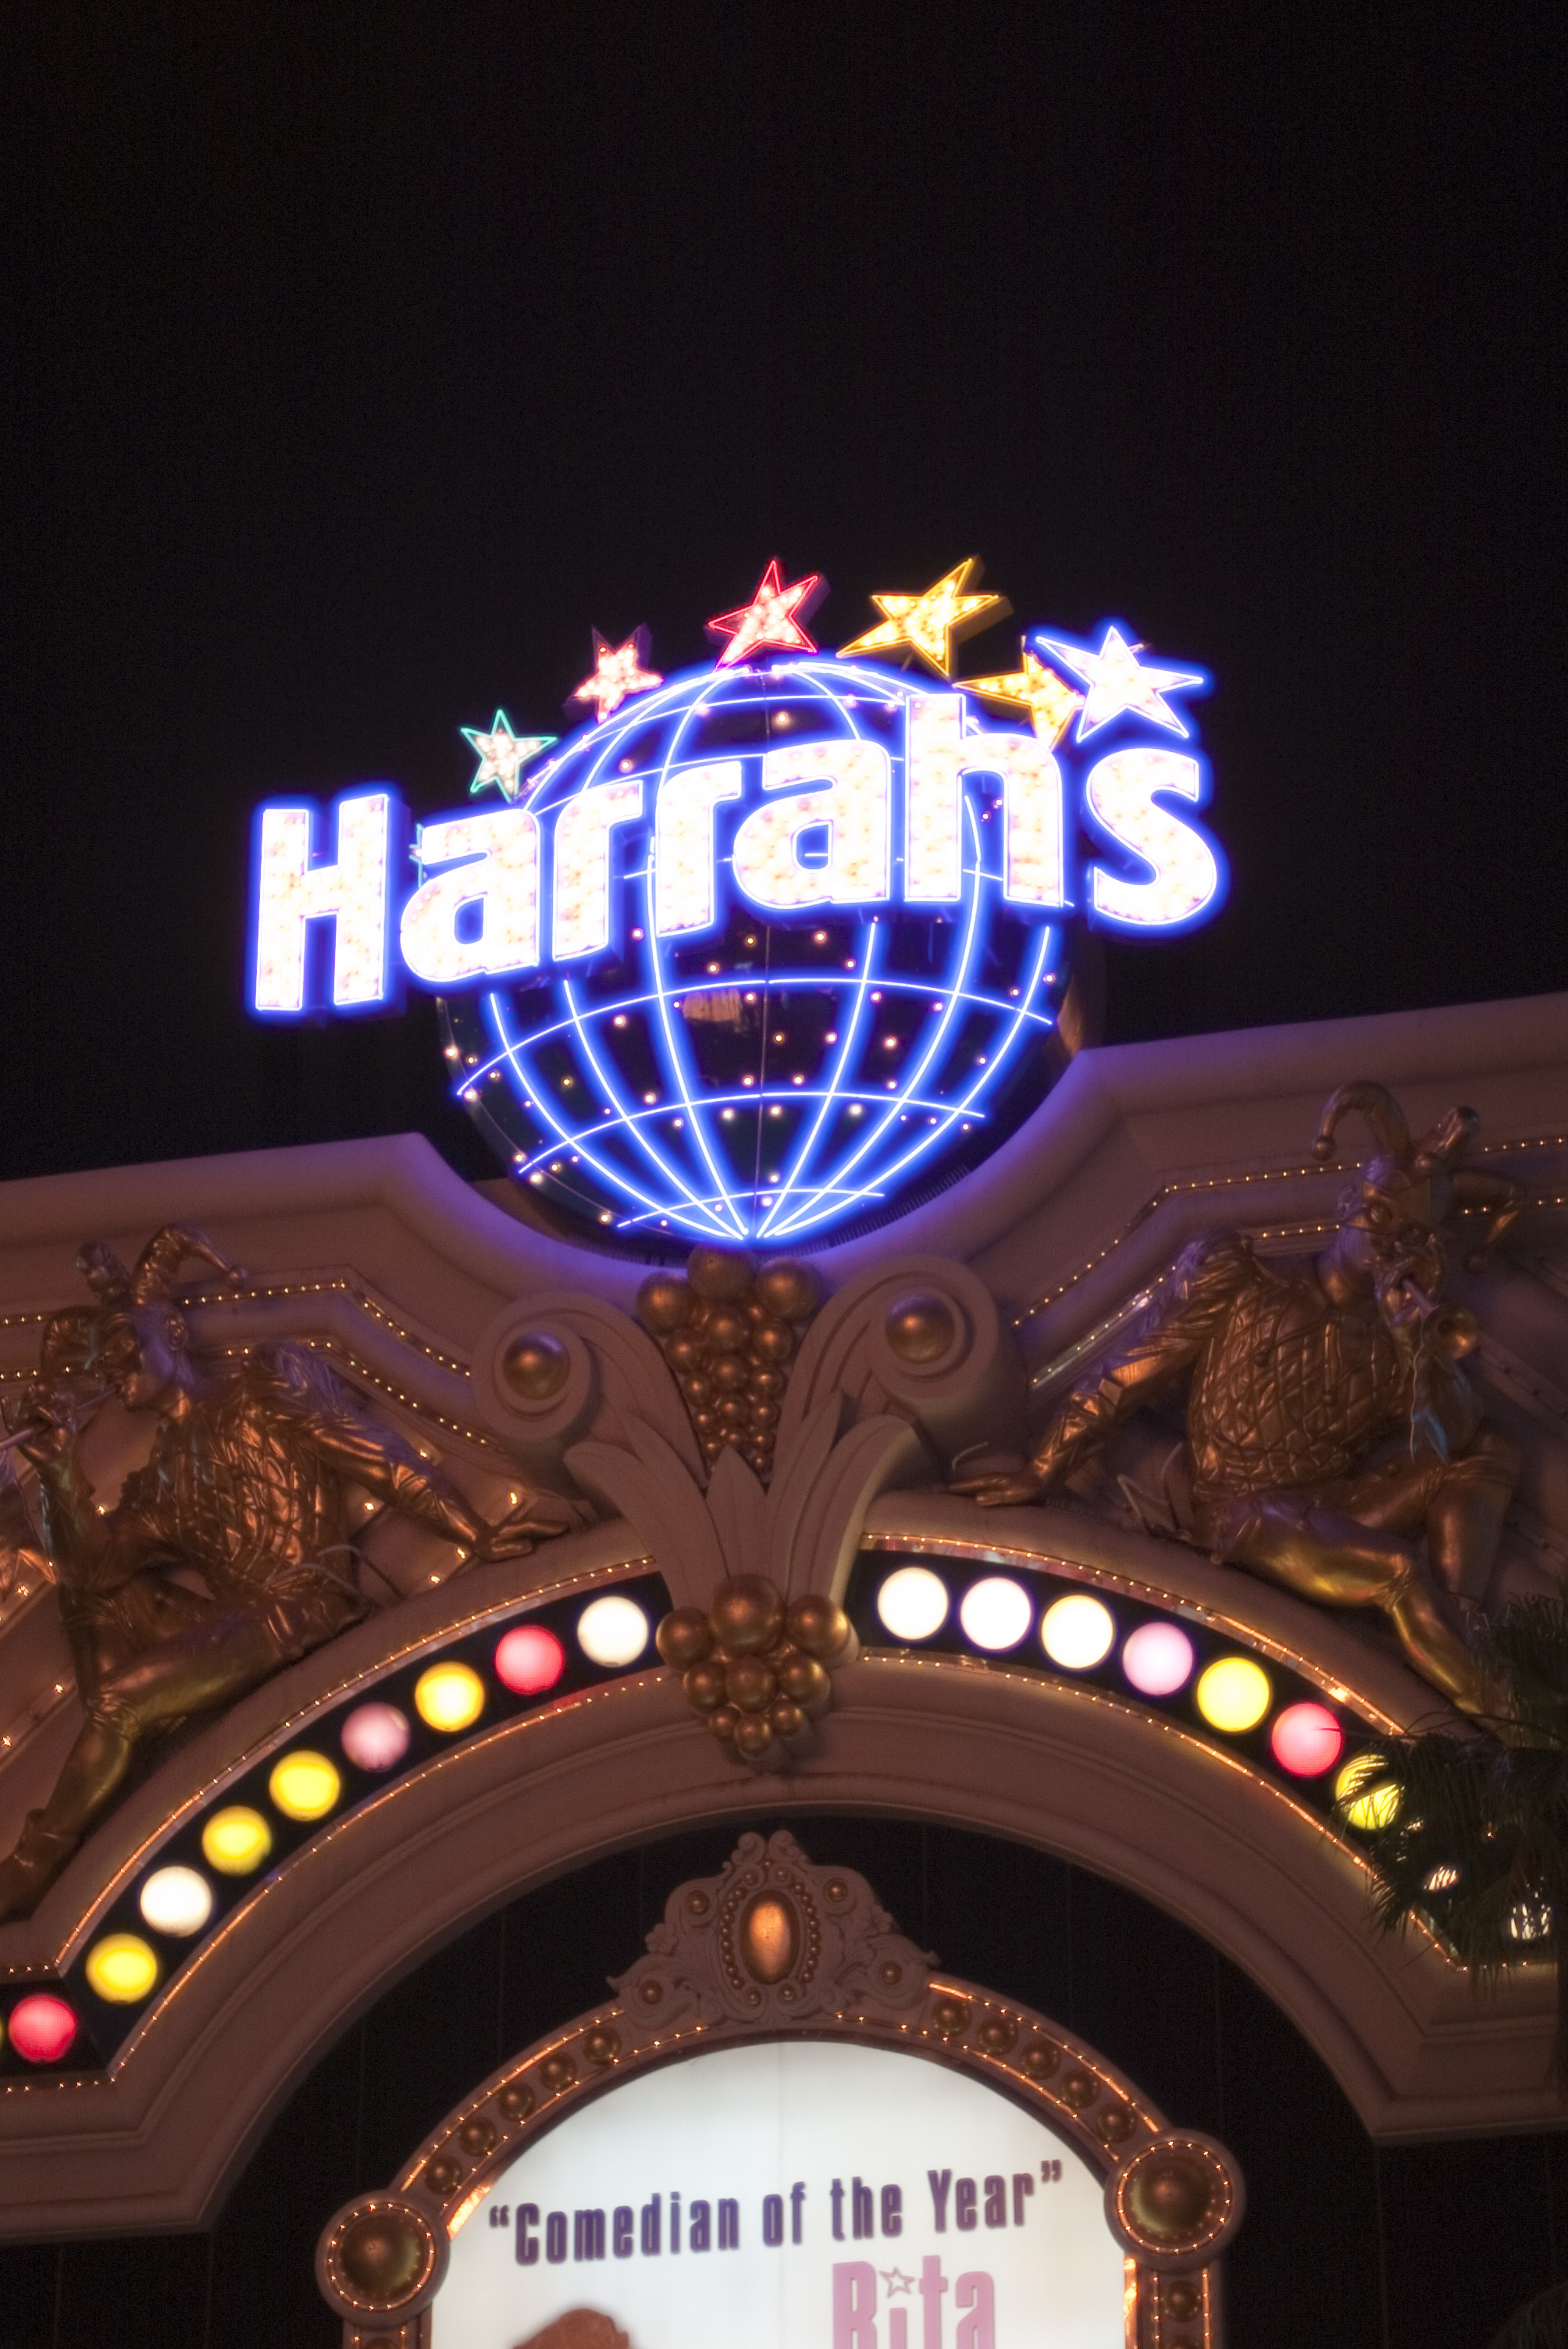 Cheap hotels in new orleans near harrah's casino